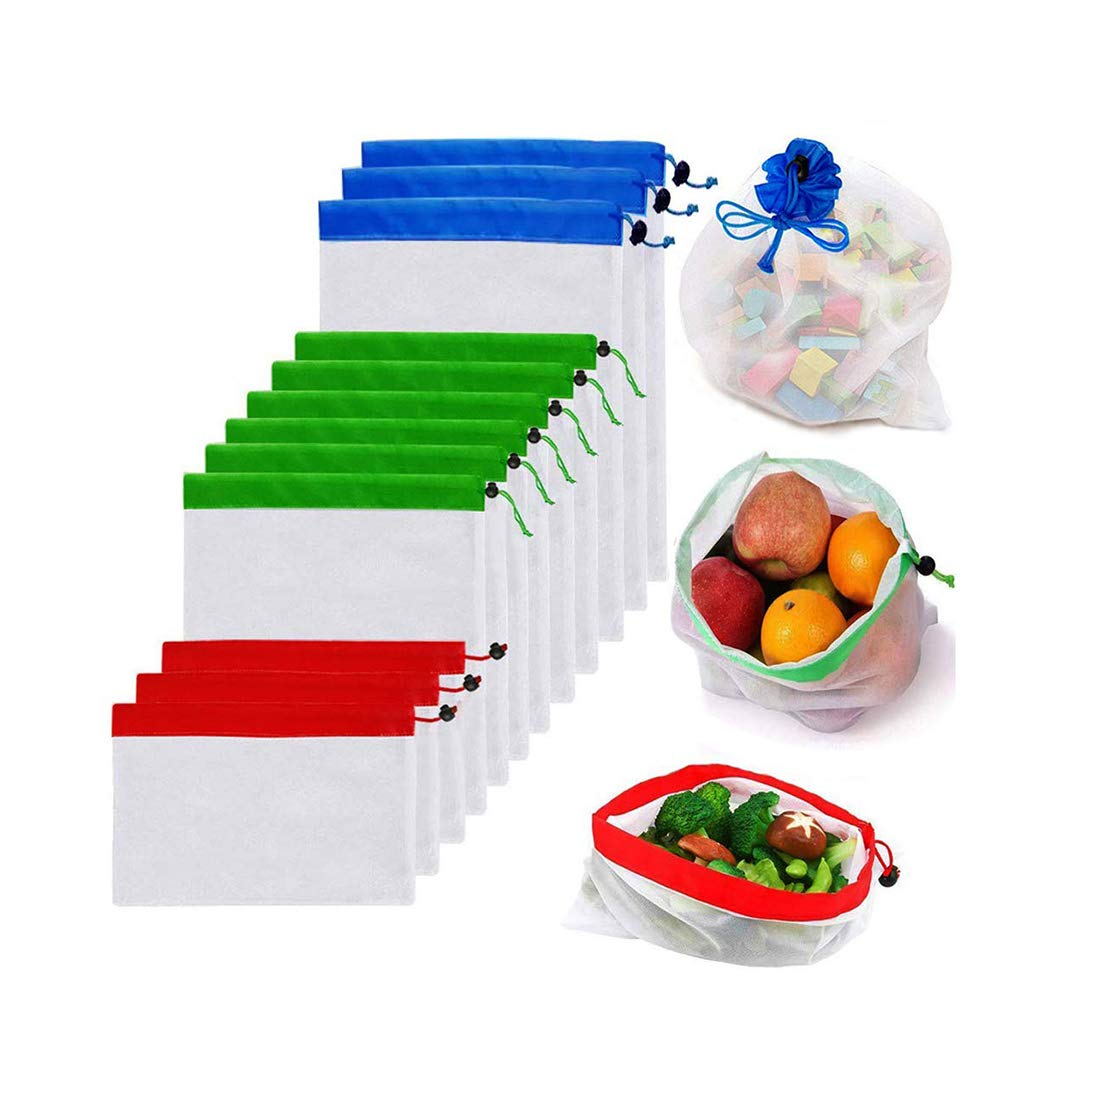 Reusable Mesh Produce Bags Premium Washable Eco Friendly Bags With Tare Weight On Tags For Grocery Shopping Storage, Fruit, Toys